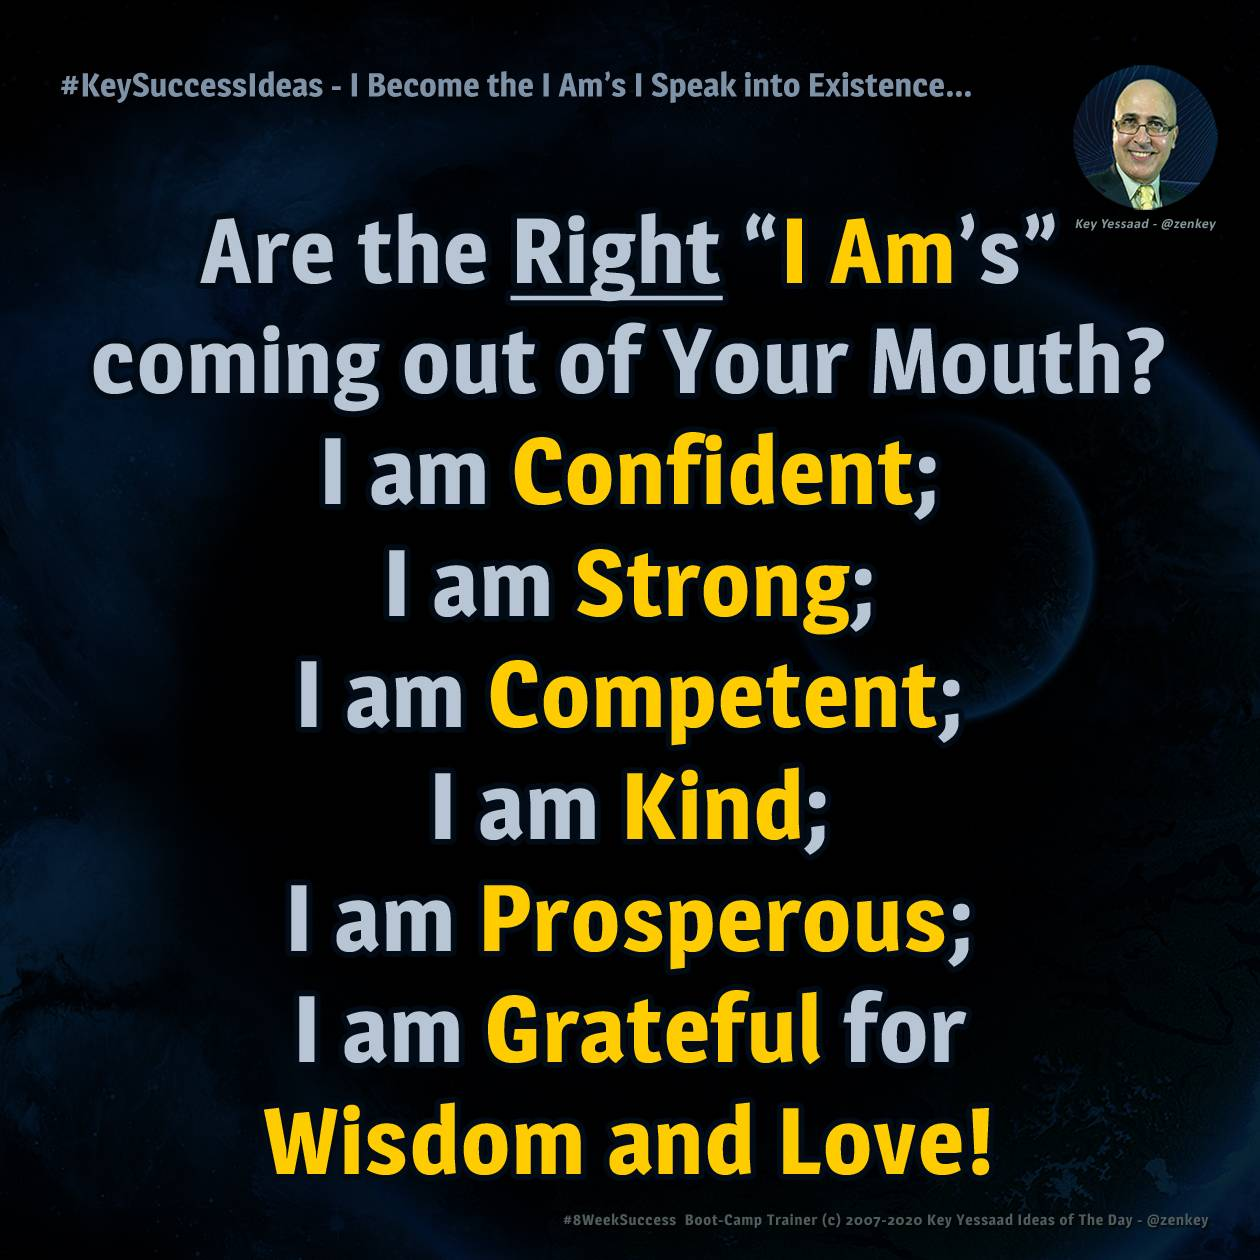 #KeySuccessIdeas - I Become the I Am's I Speak into Existence...